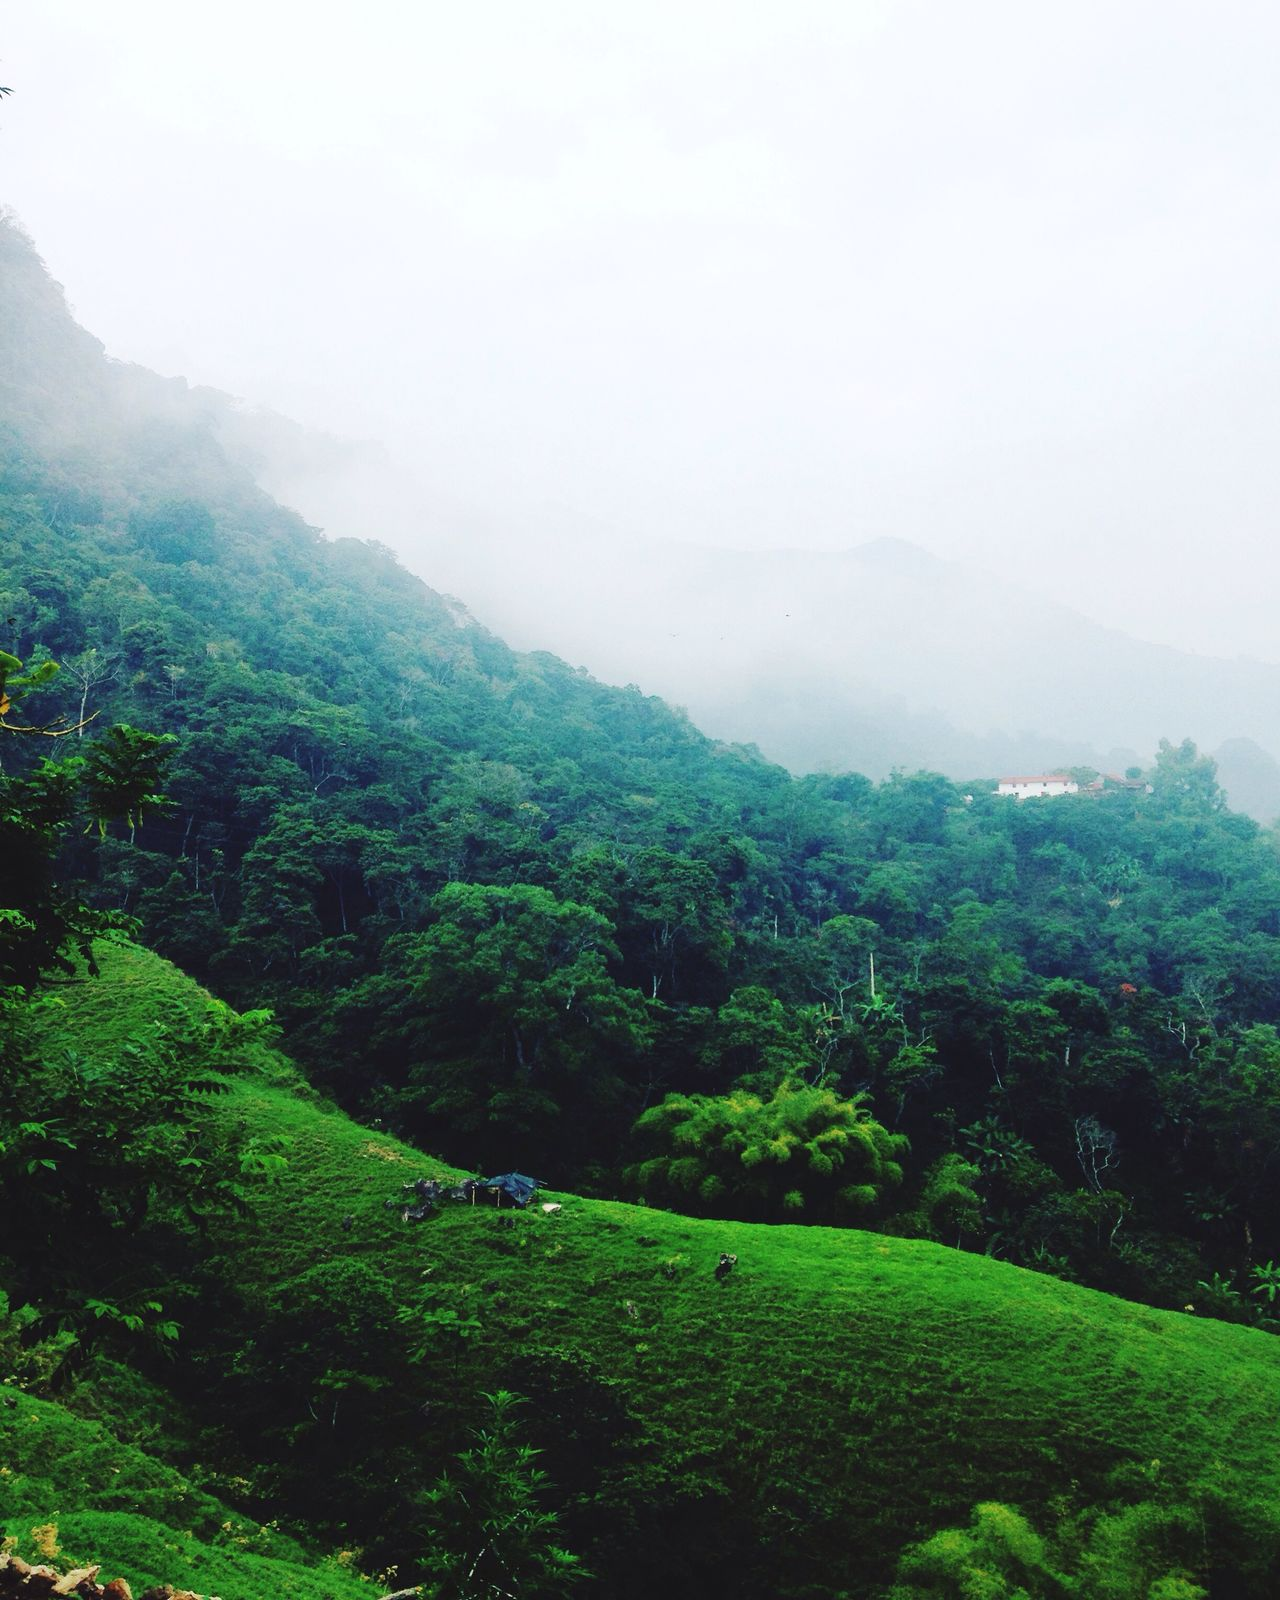 Mountains of Minca 🌴🇨🇴 Nature Lush Foliage Tranquility Landscape Mountain Scenics Beauty In Nature